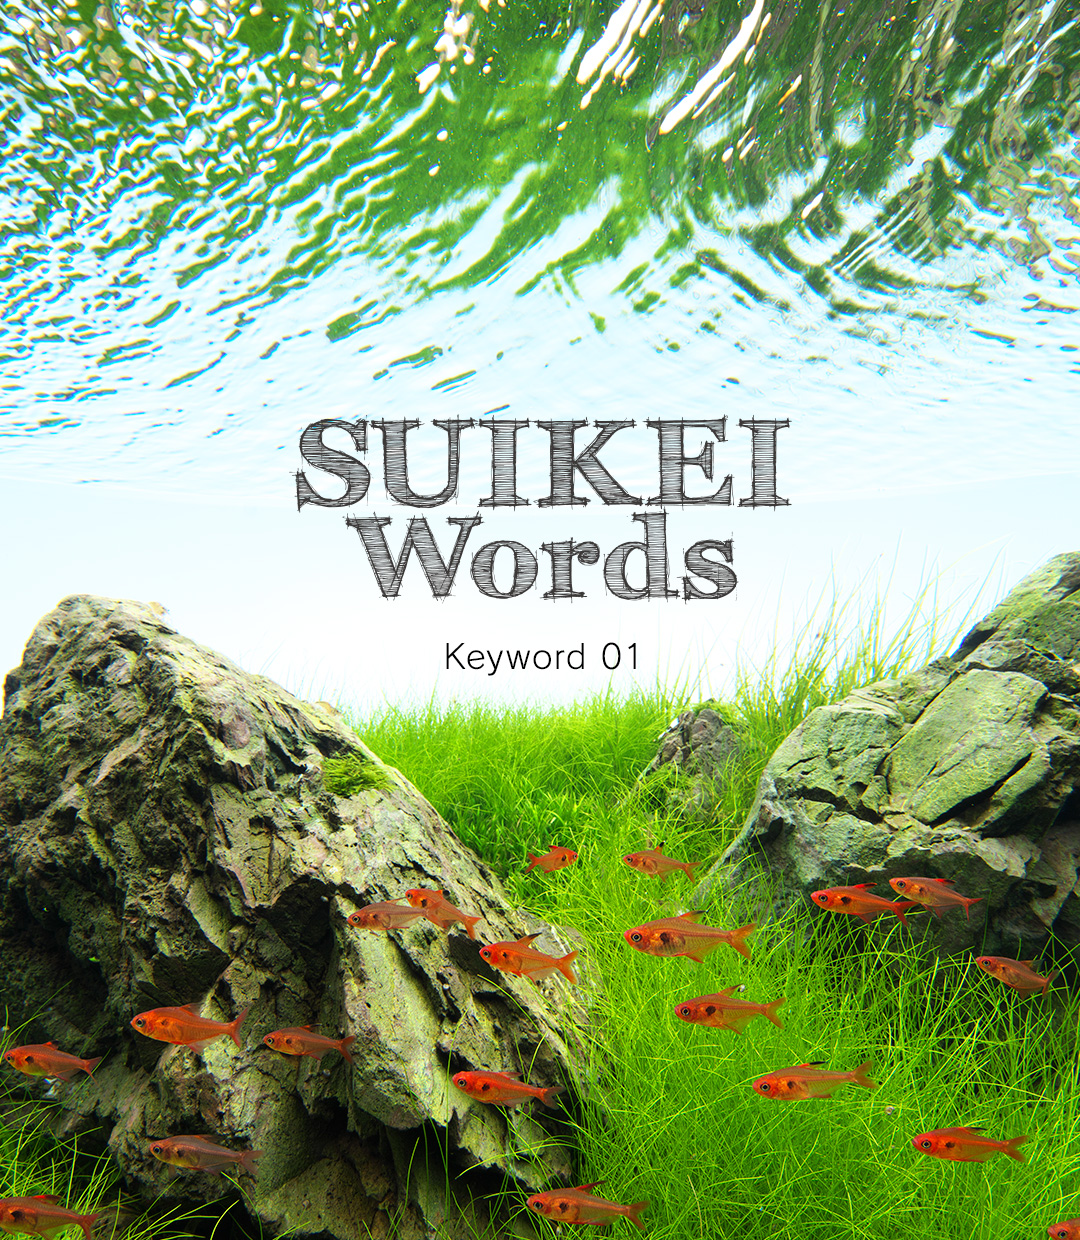 SUIKEI Words Keyword 01 'Layout composition – Iwagumi'